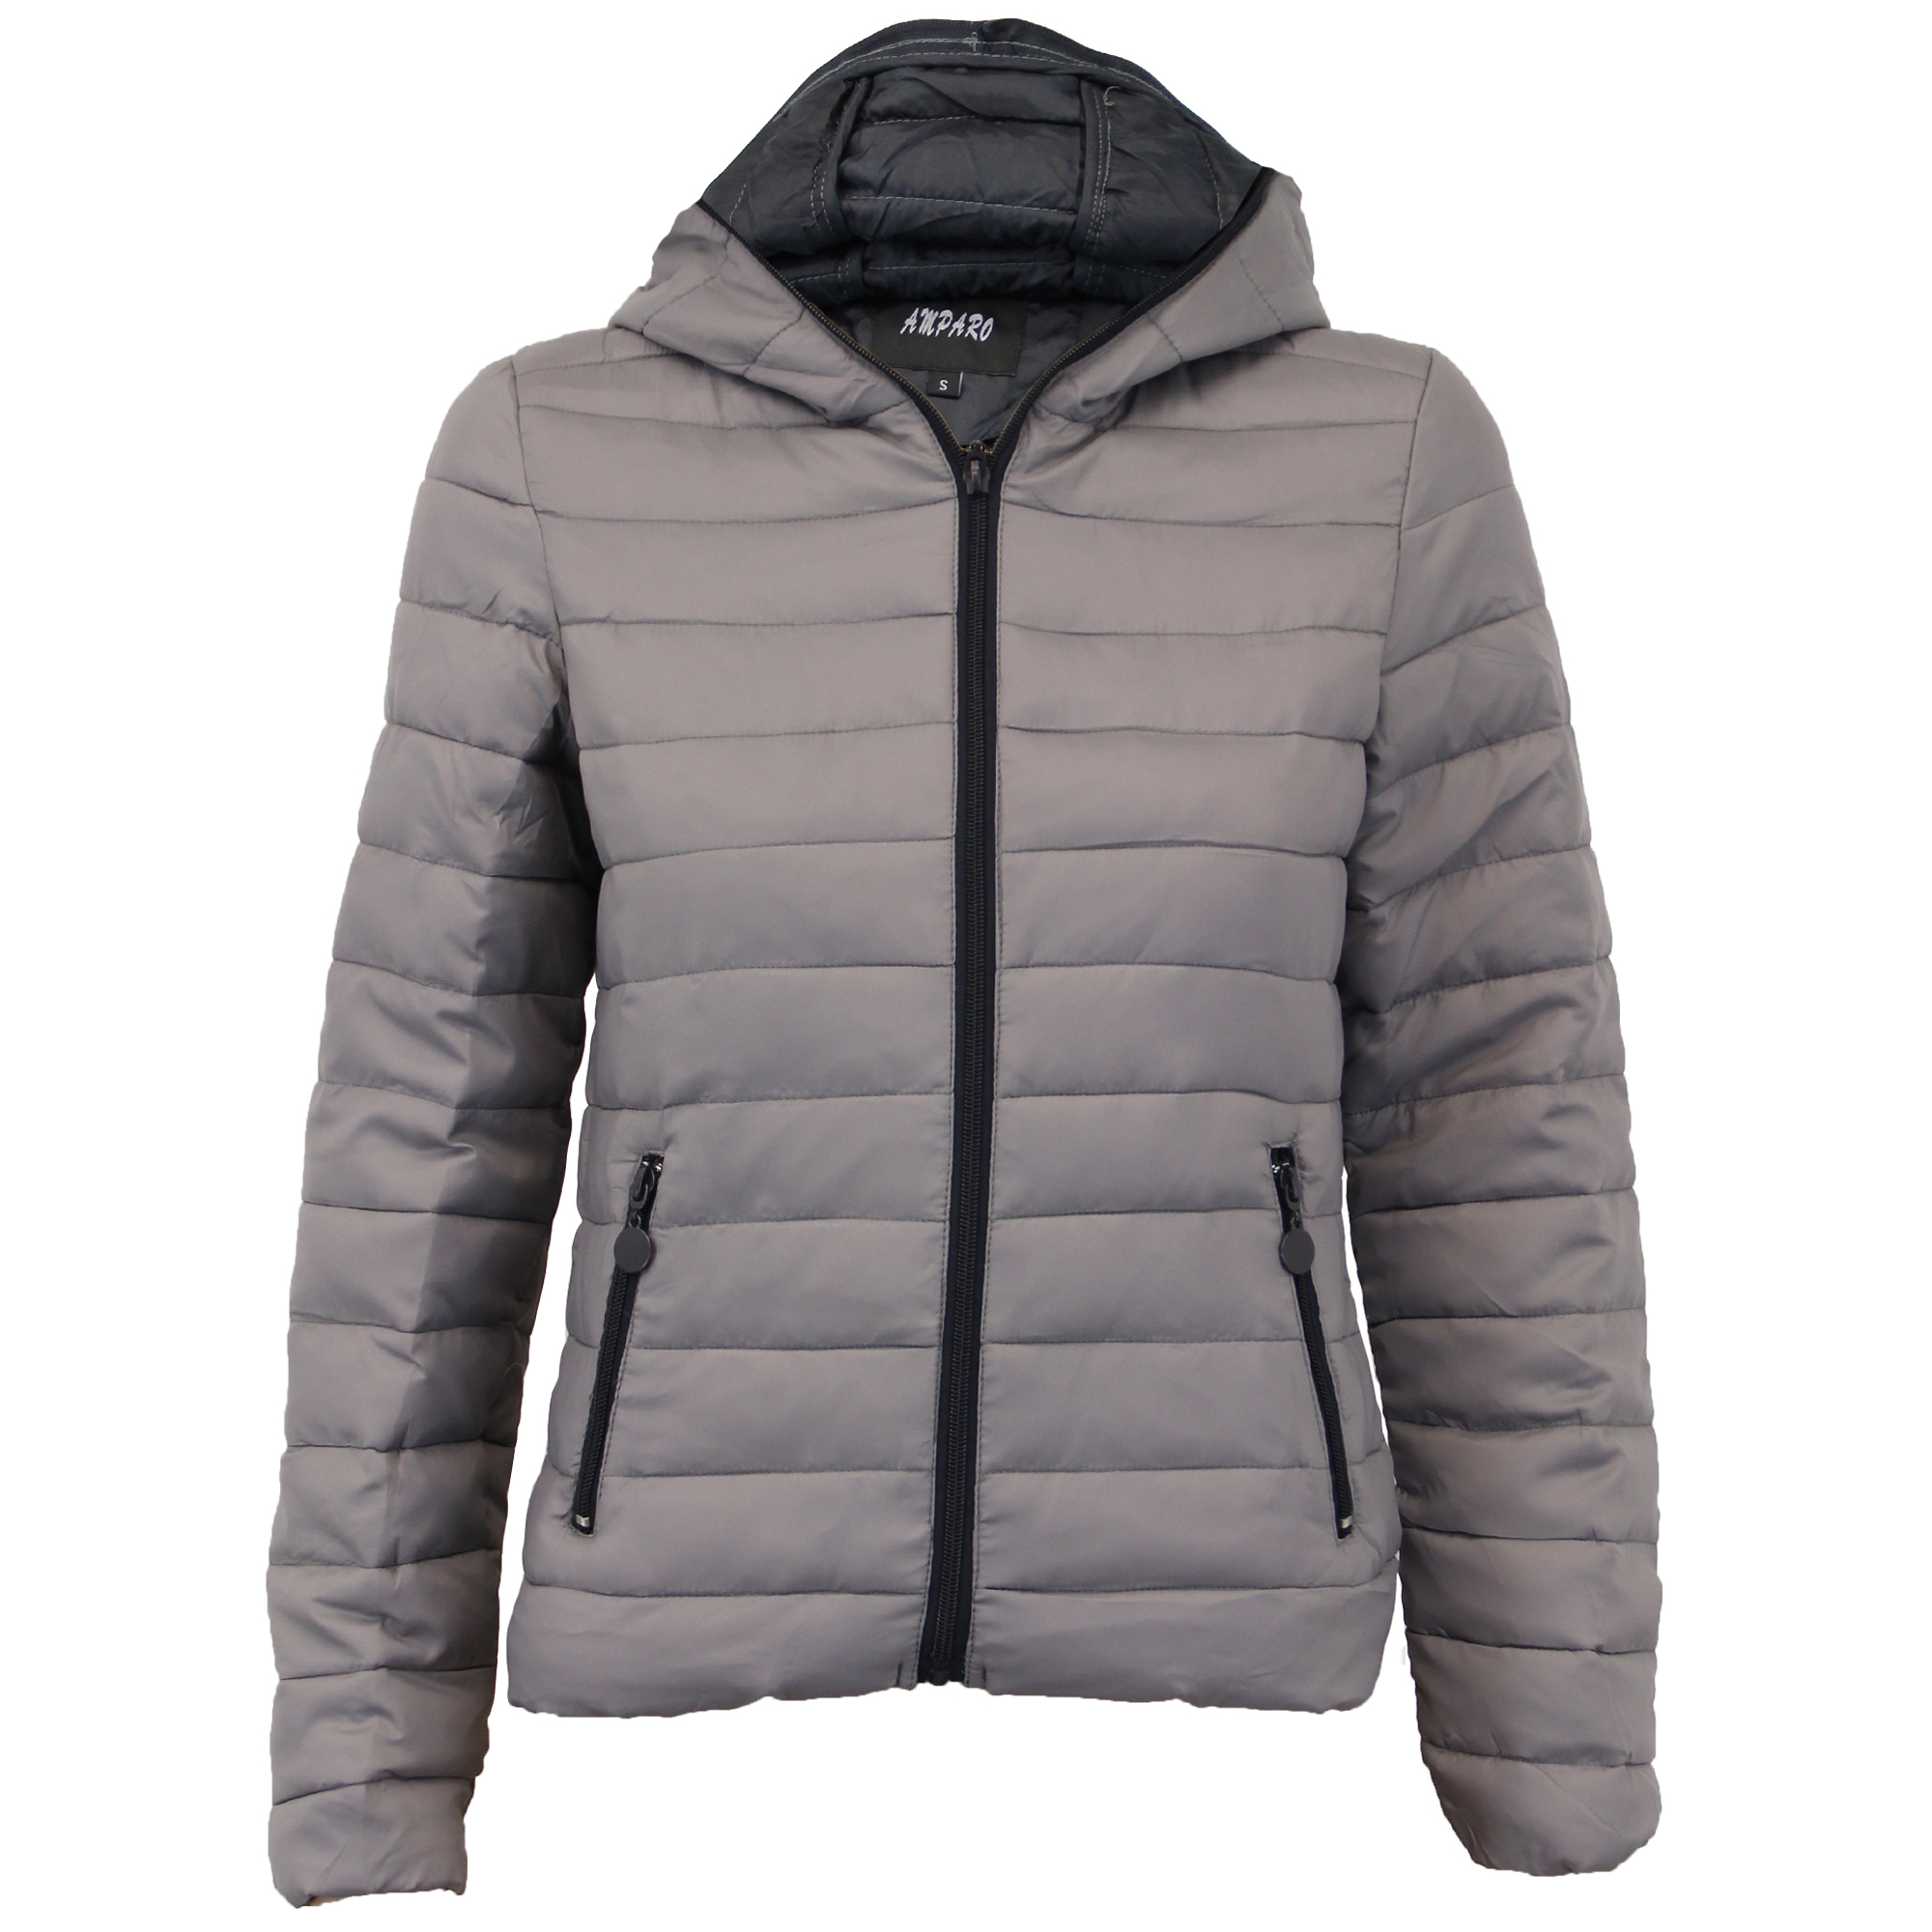 Find great deals on eBay for ladies padded jackets. Shop with confidence.